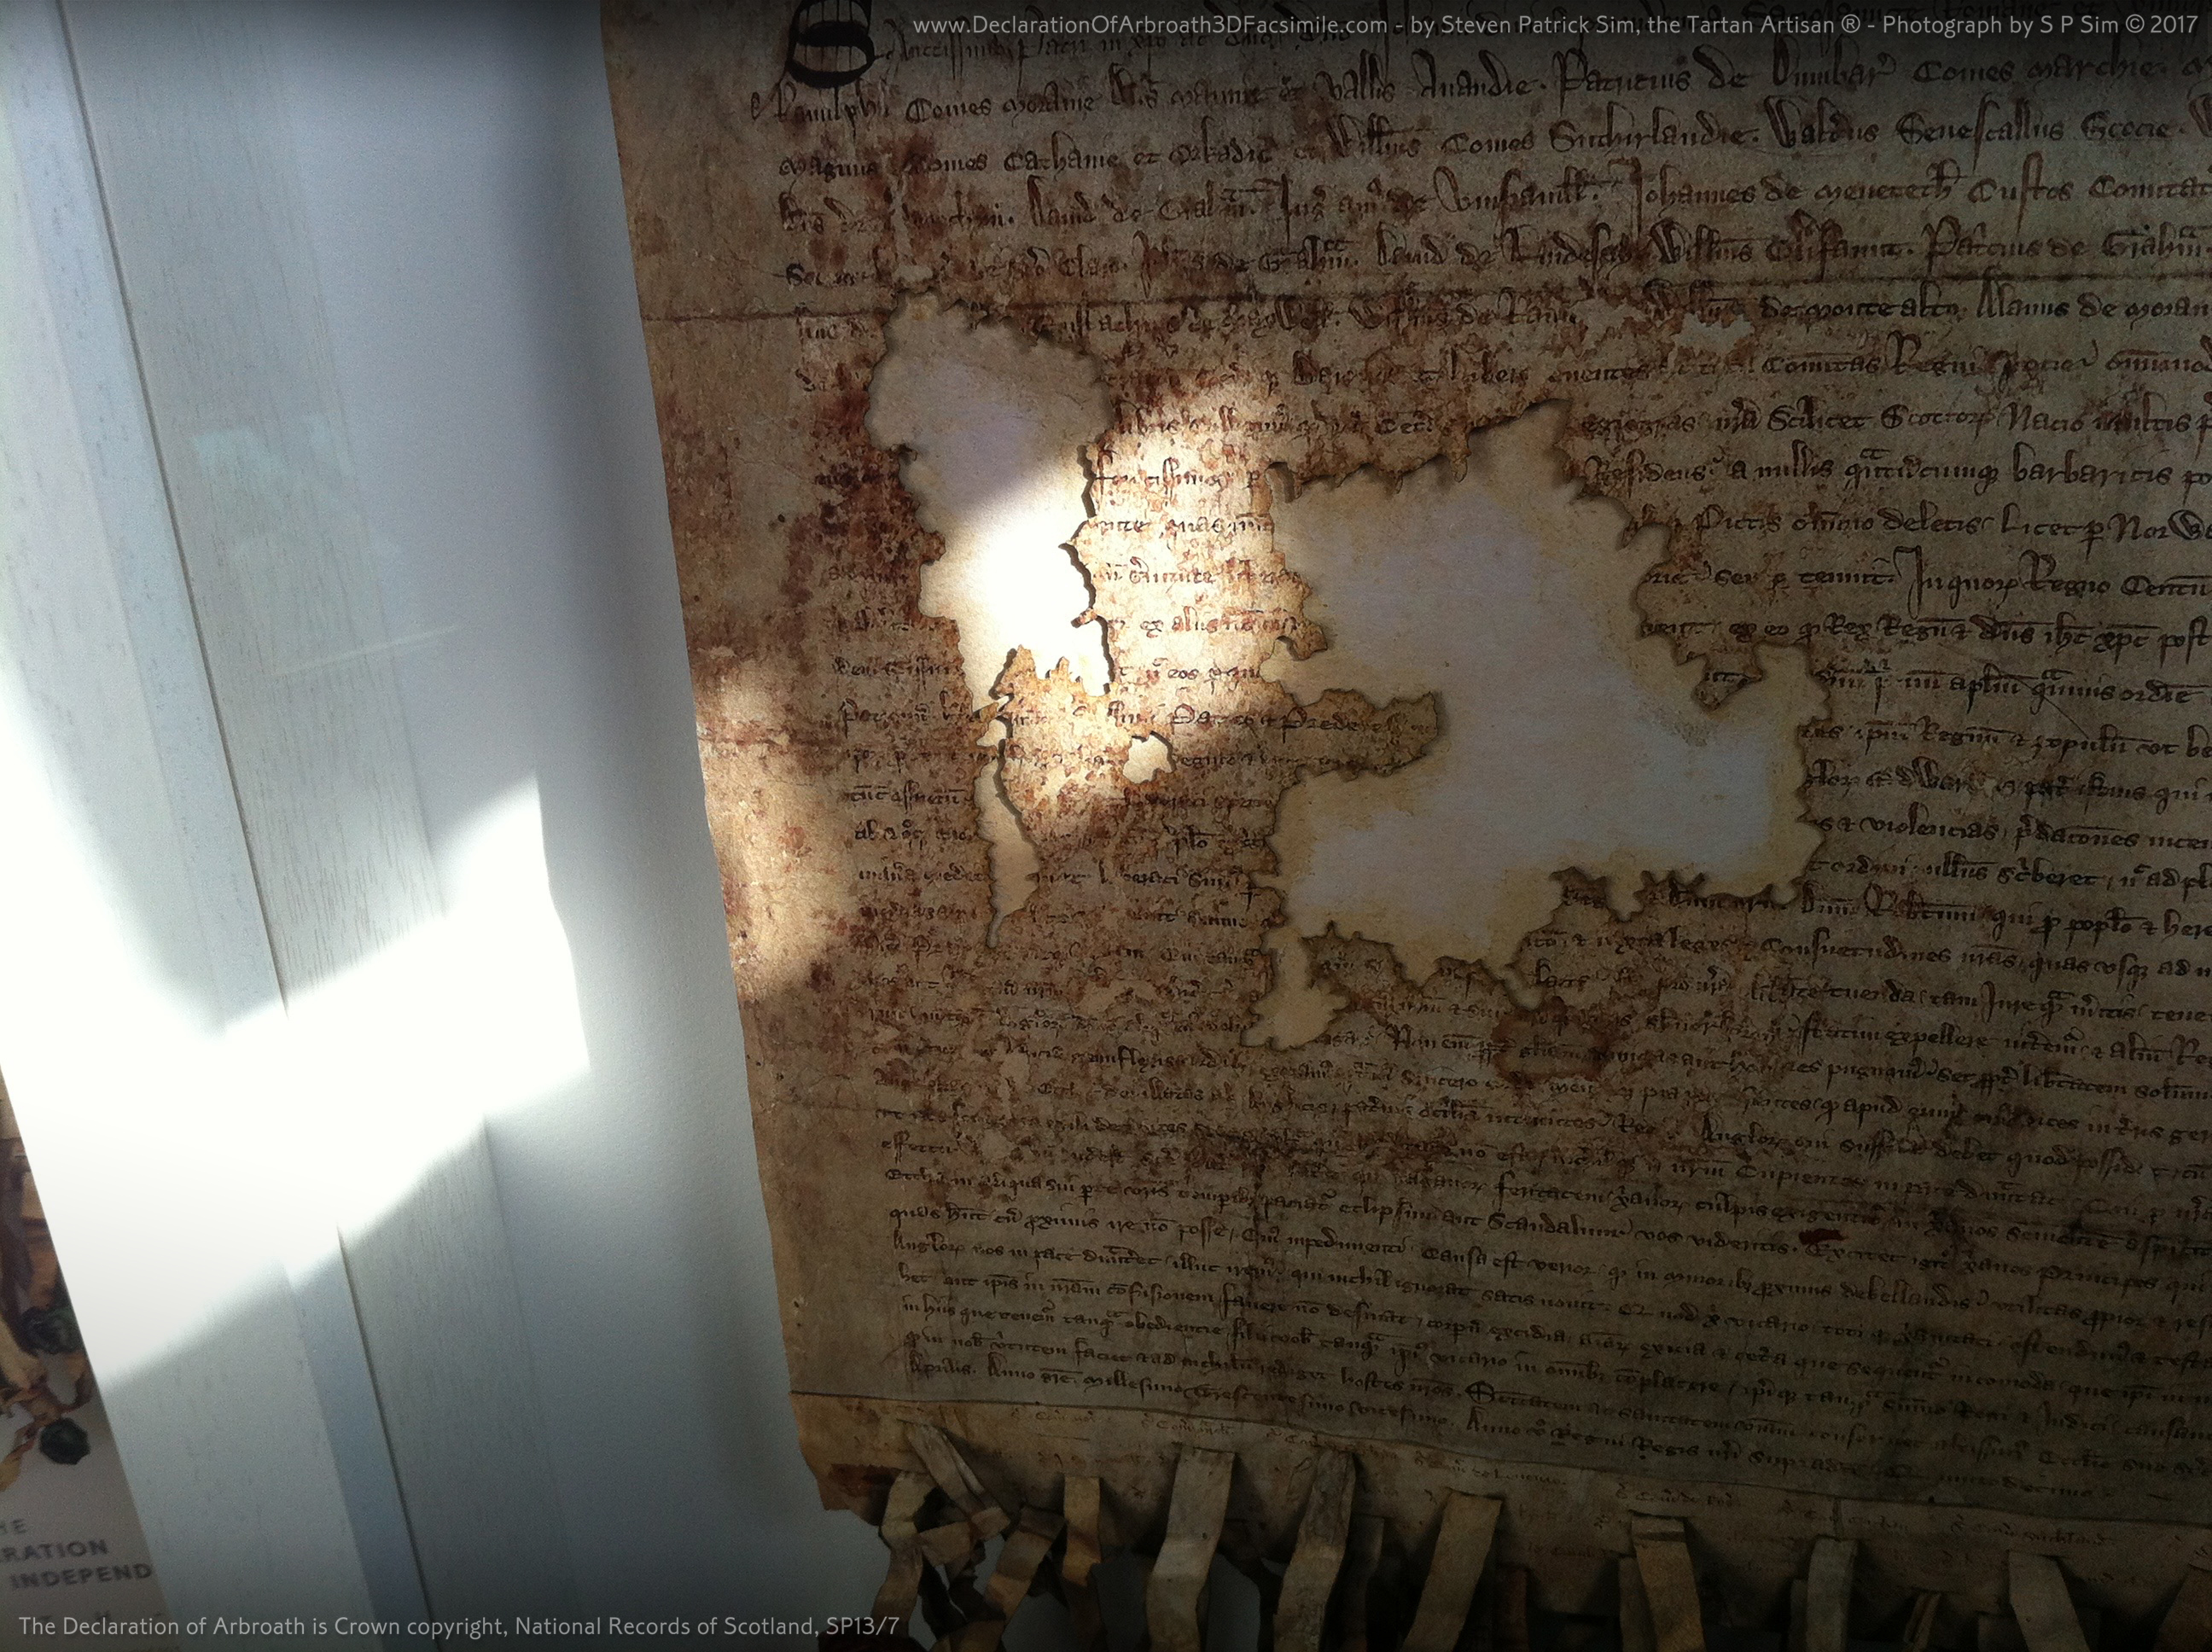 Declaration of Arbroath Facsimile086